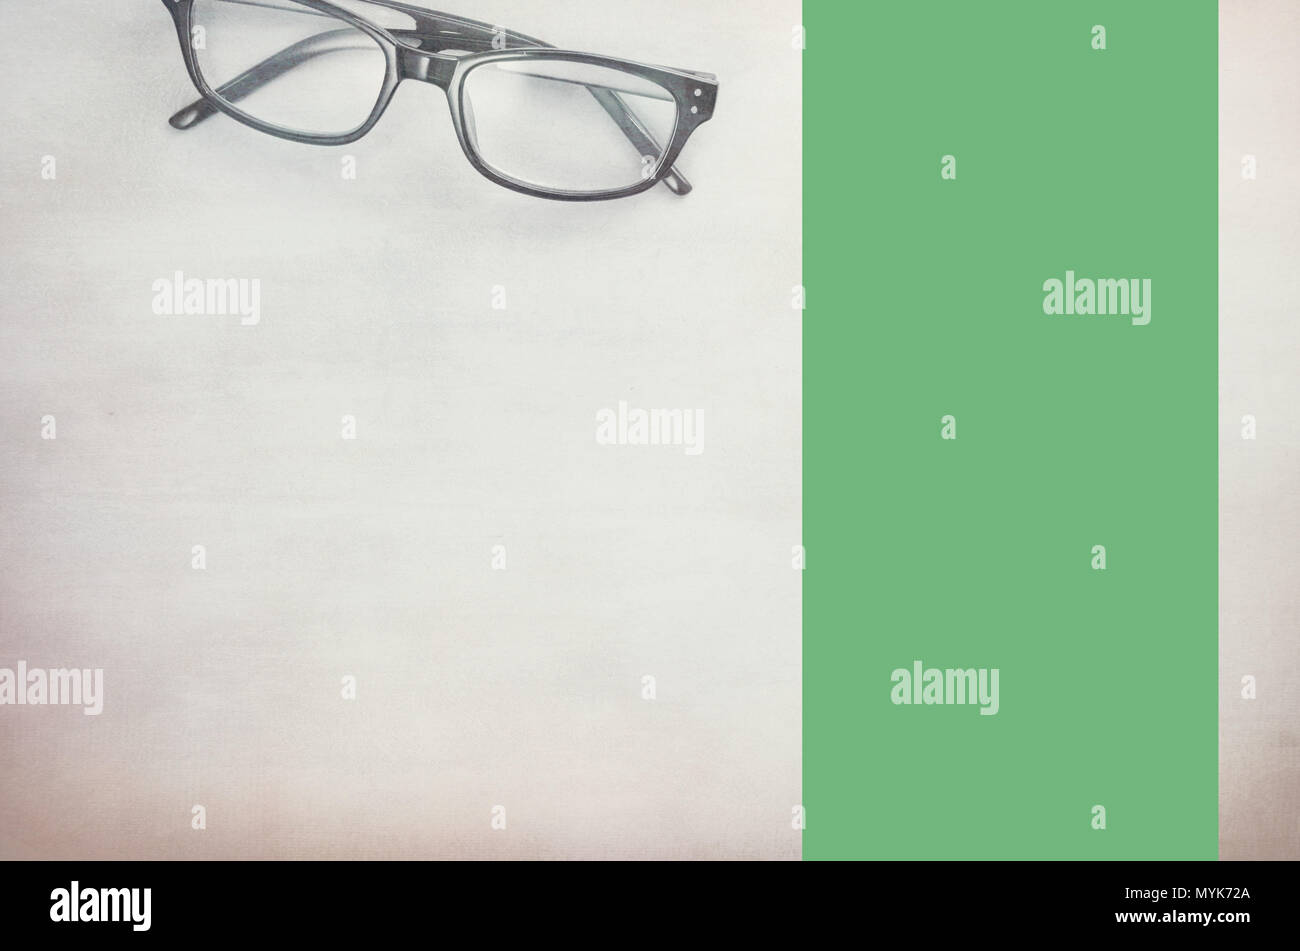 pair of framed eyeglasses on a light textured surface - directly above Stock Photo